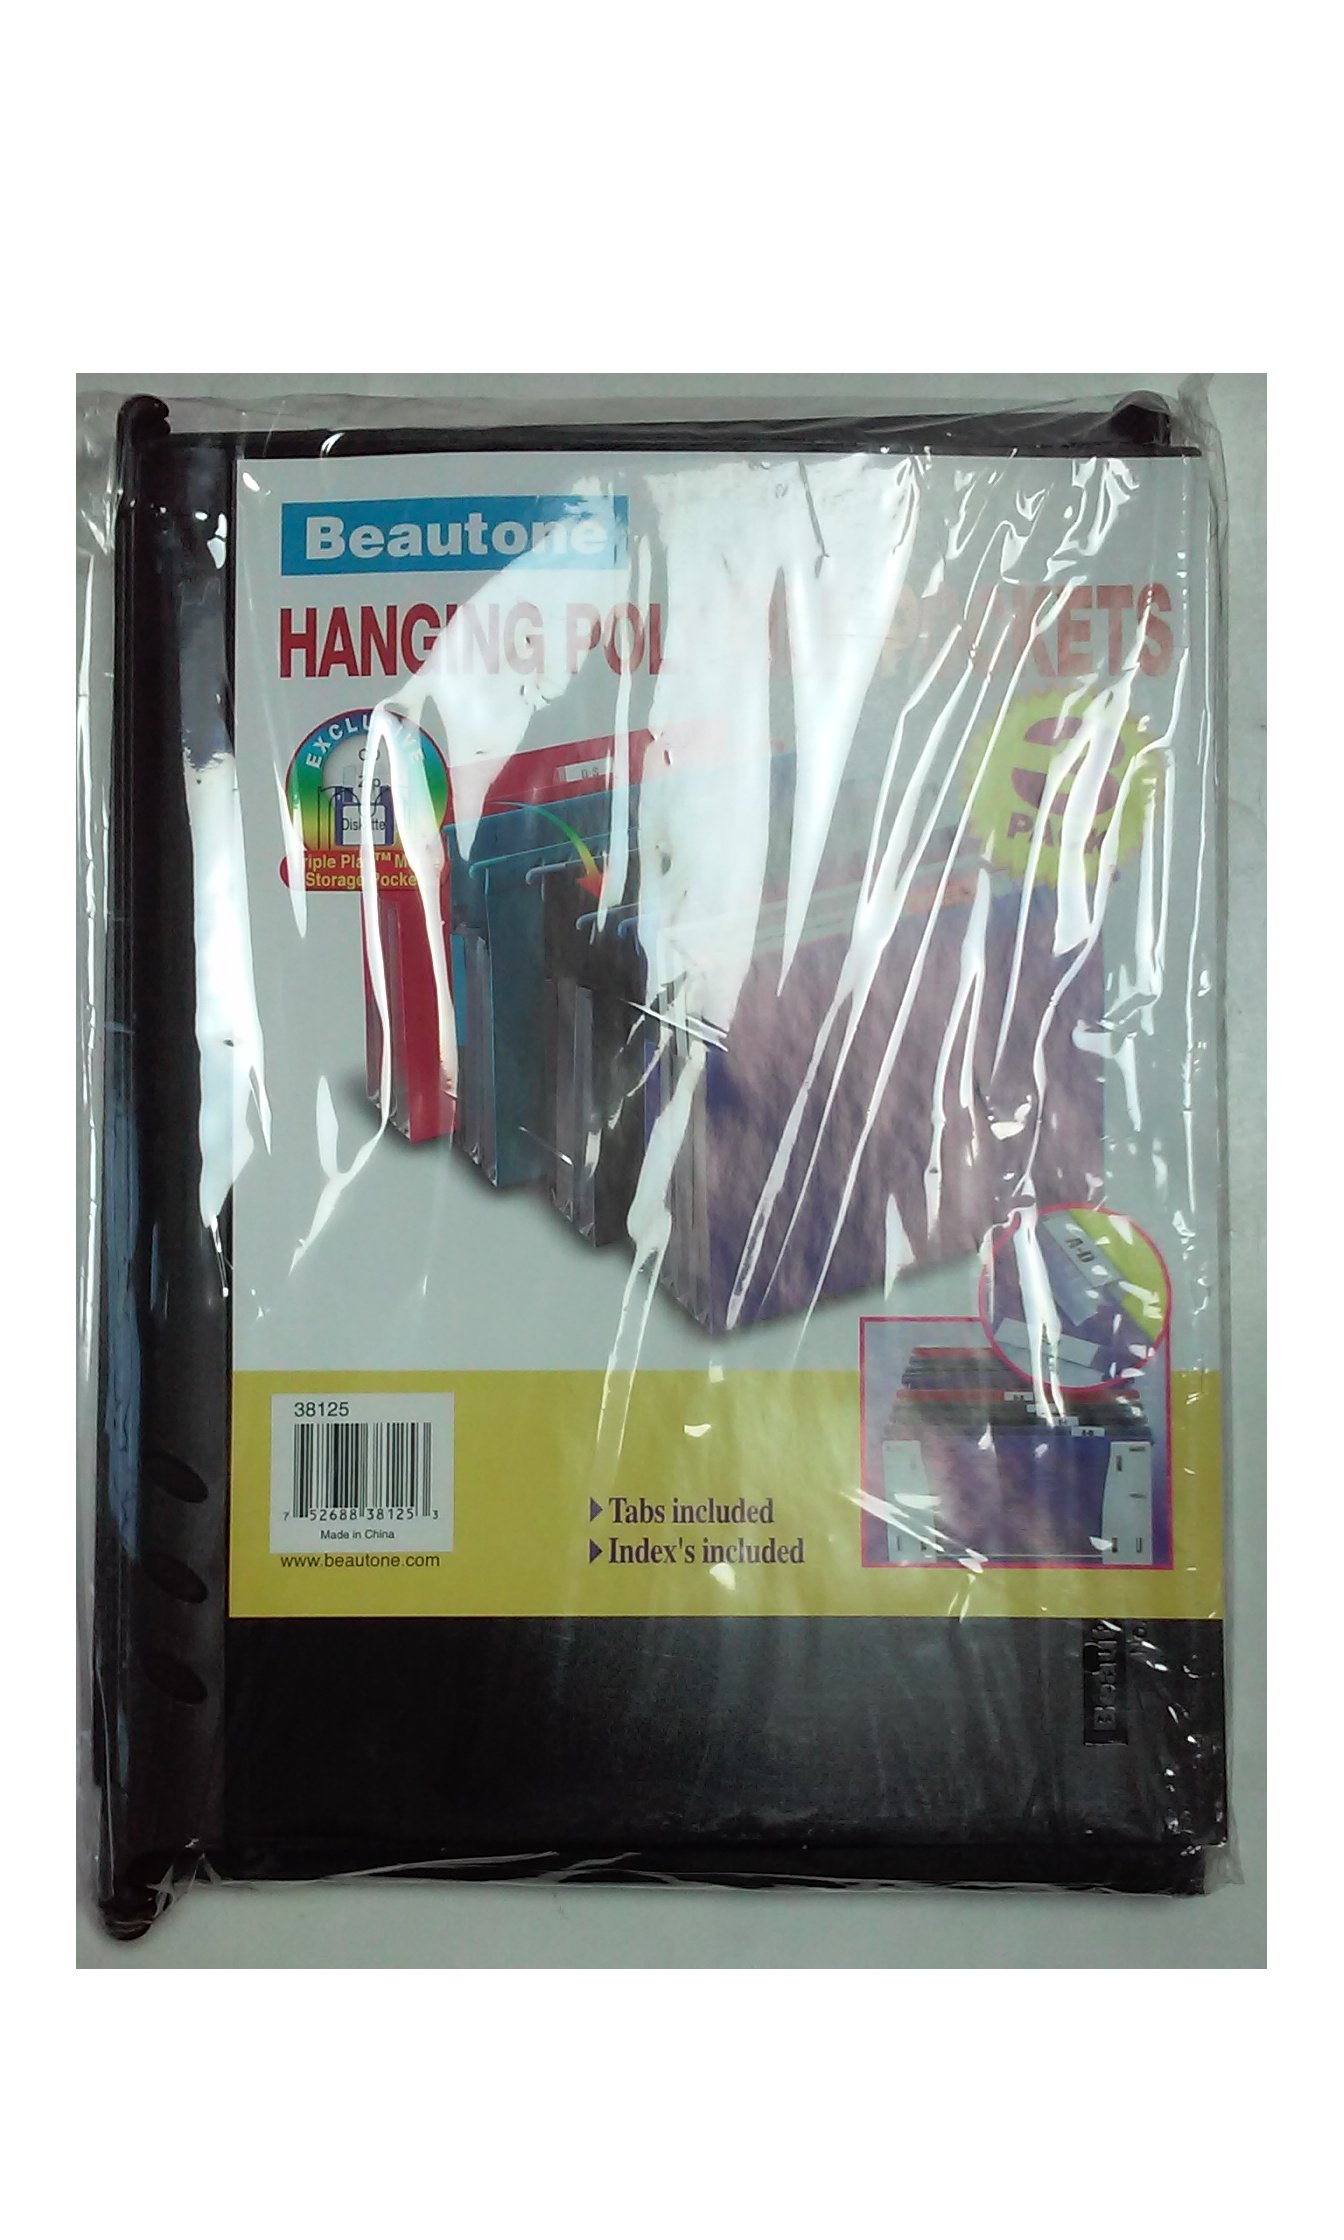 Beautone Hanging Poly File Pockets 3 Pack Tabs Included Indexes Included with Media Storage Pocket (Black)